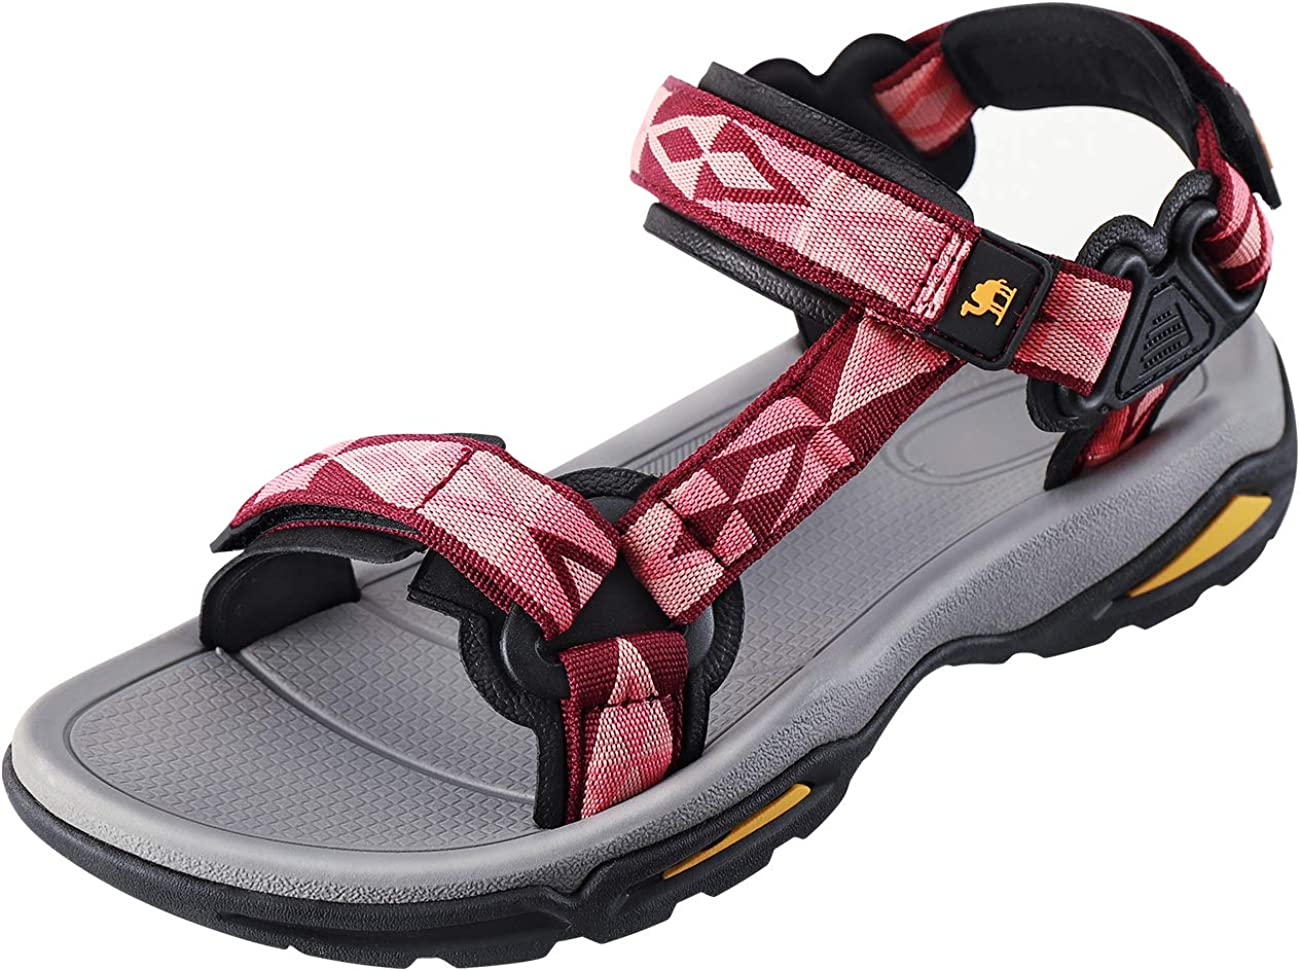 CAMEL CROWN Waterproof Hiking Sandals Women Arch Support Sport Sandals Comfortable Walking Water Sandals for Beach Travel Athletic